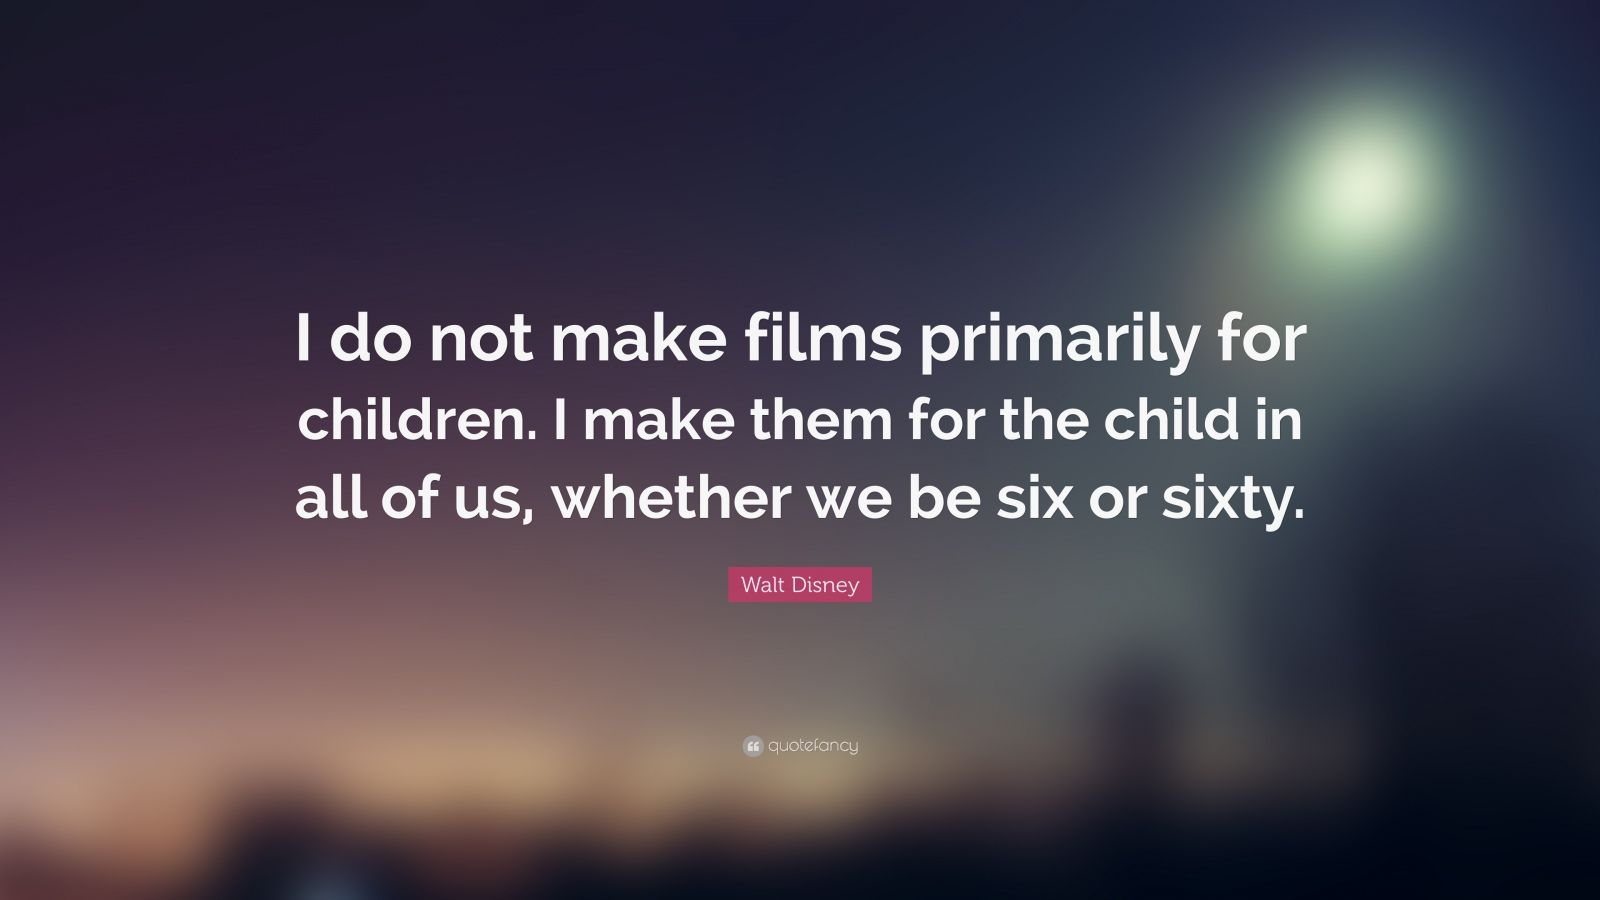 """Walt Disney Quote: """"I do not make films primarily for children. I make them for the child in all of us, whether we be six or sixty."""""""